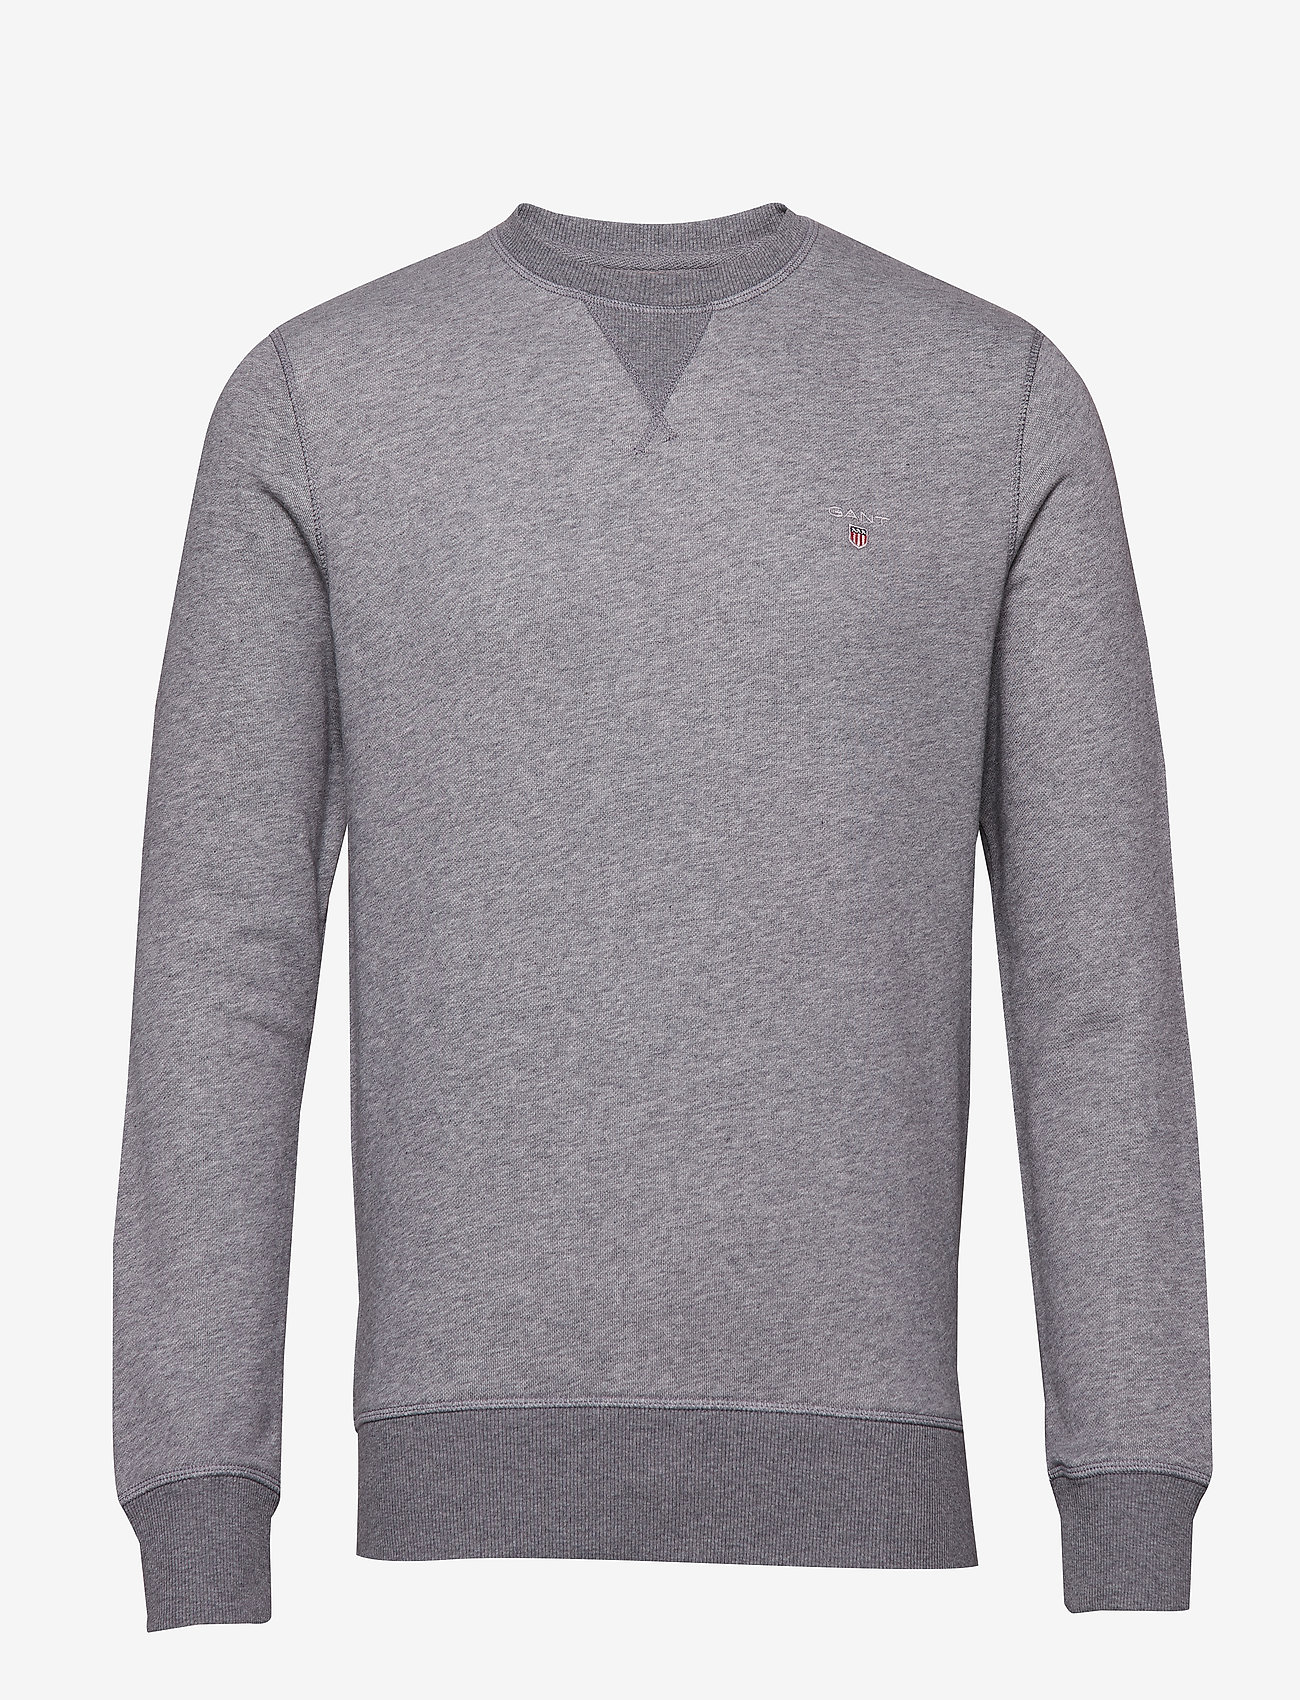 GANT - THE ORIGINAL C-NECK SWEAT - basic-sweatshirts - dark grey melange - 0